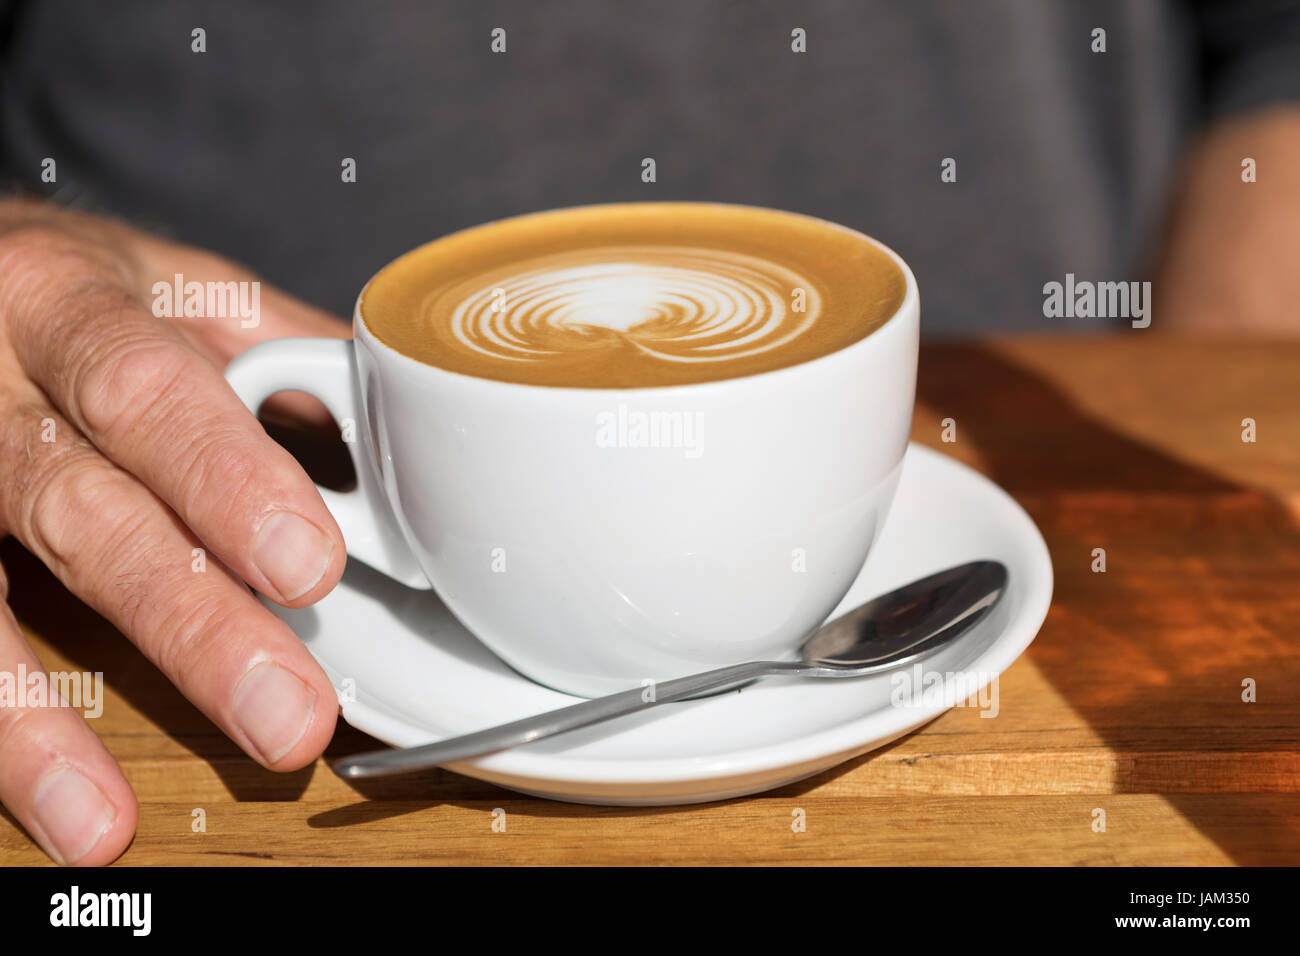 man's hand on the handle of a cup of latte with a design and a spoon on the plate - Stock Image